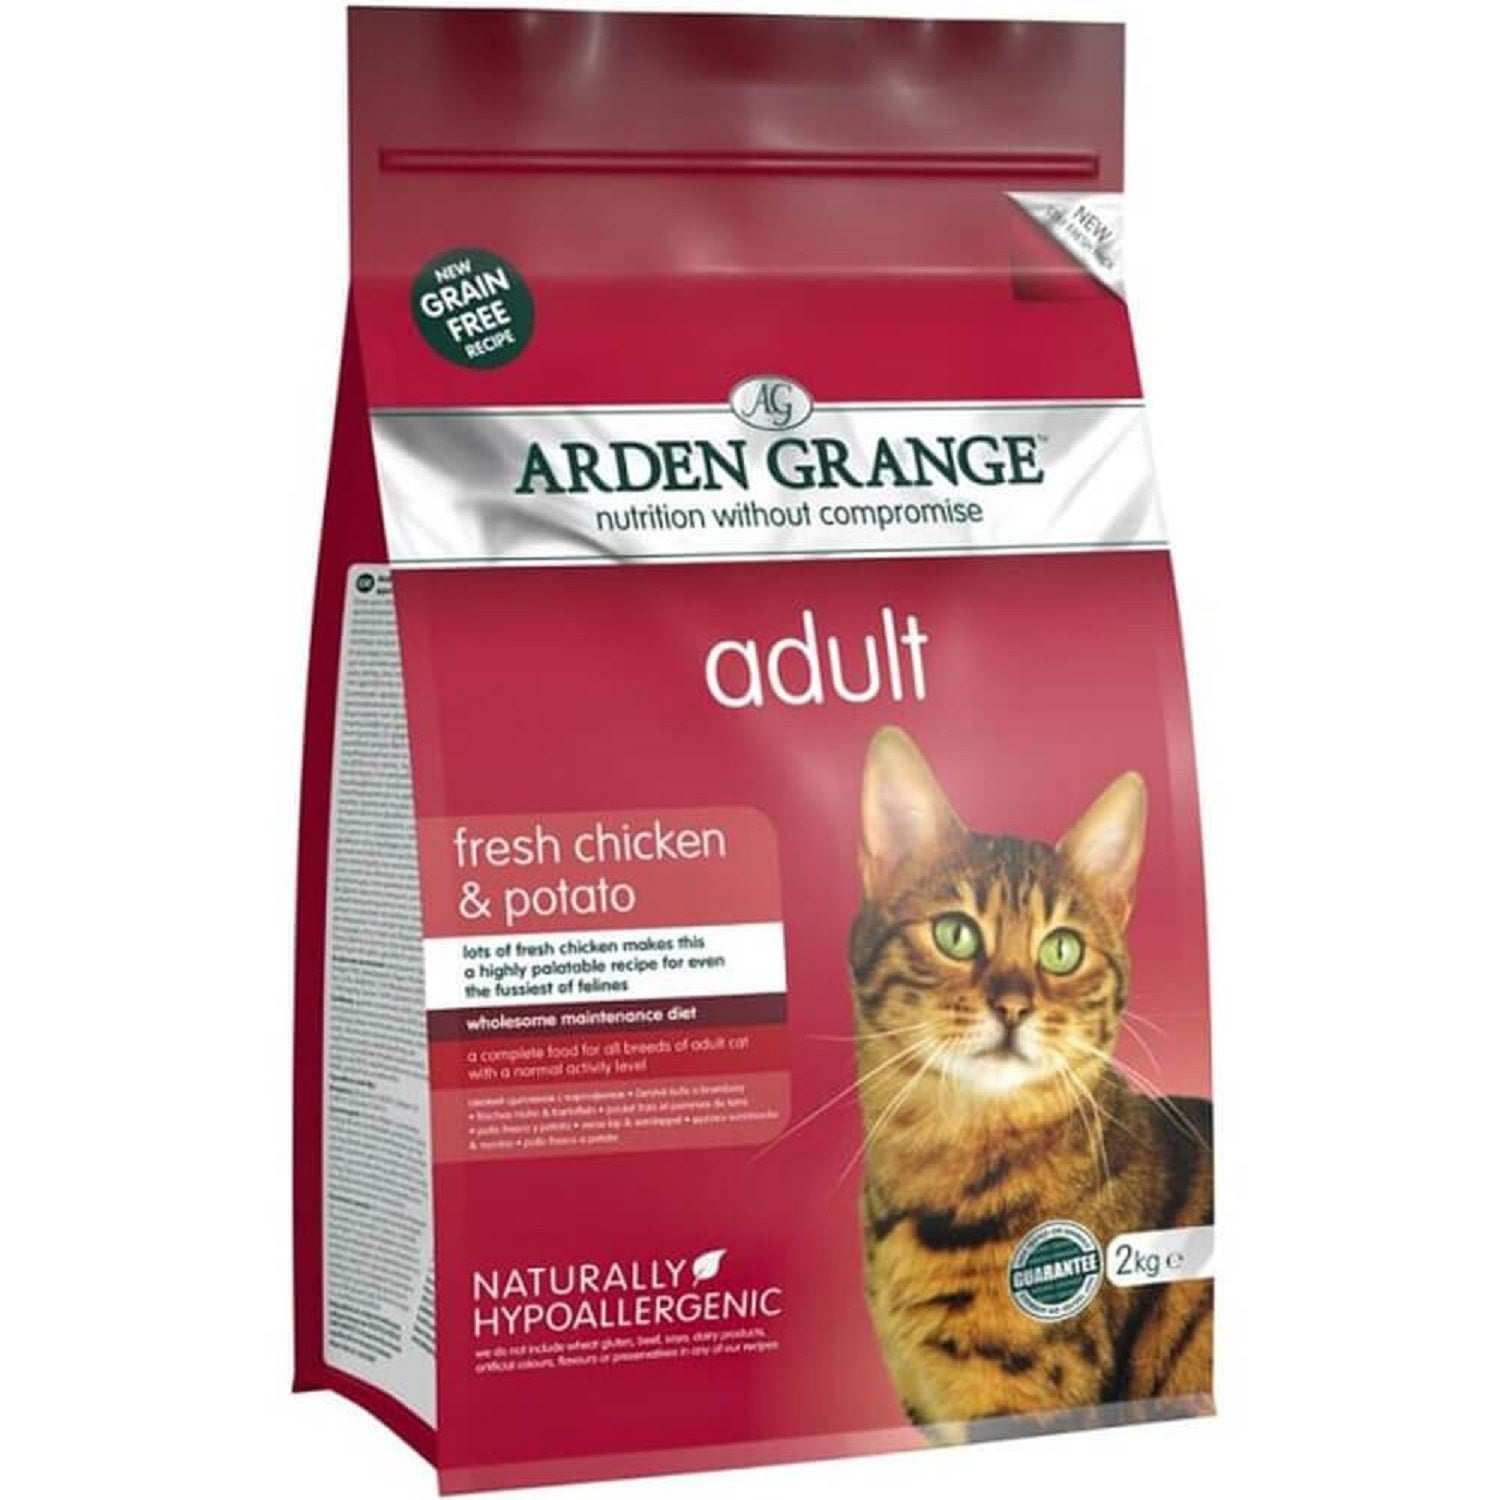 Arden Grange fresh Chicken & Potato Adult Cat Food - pet-club-india